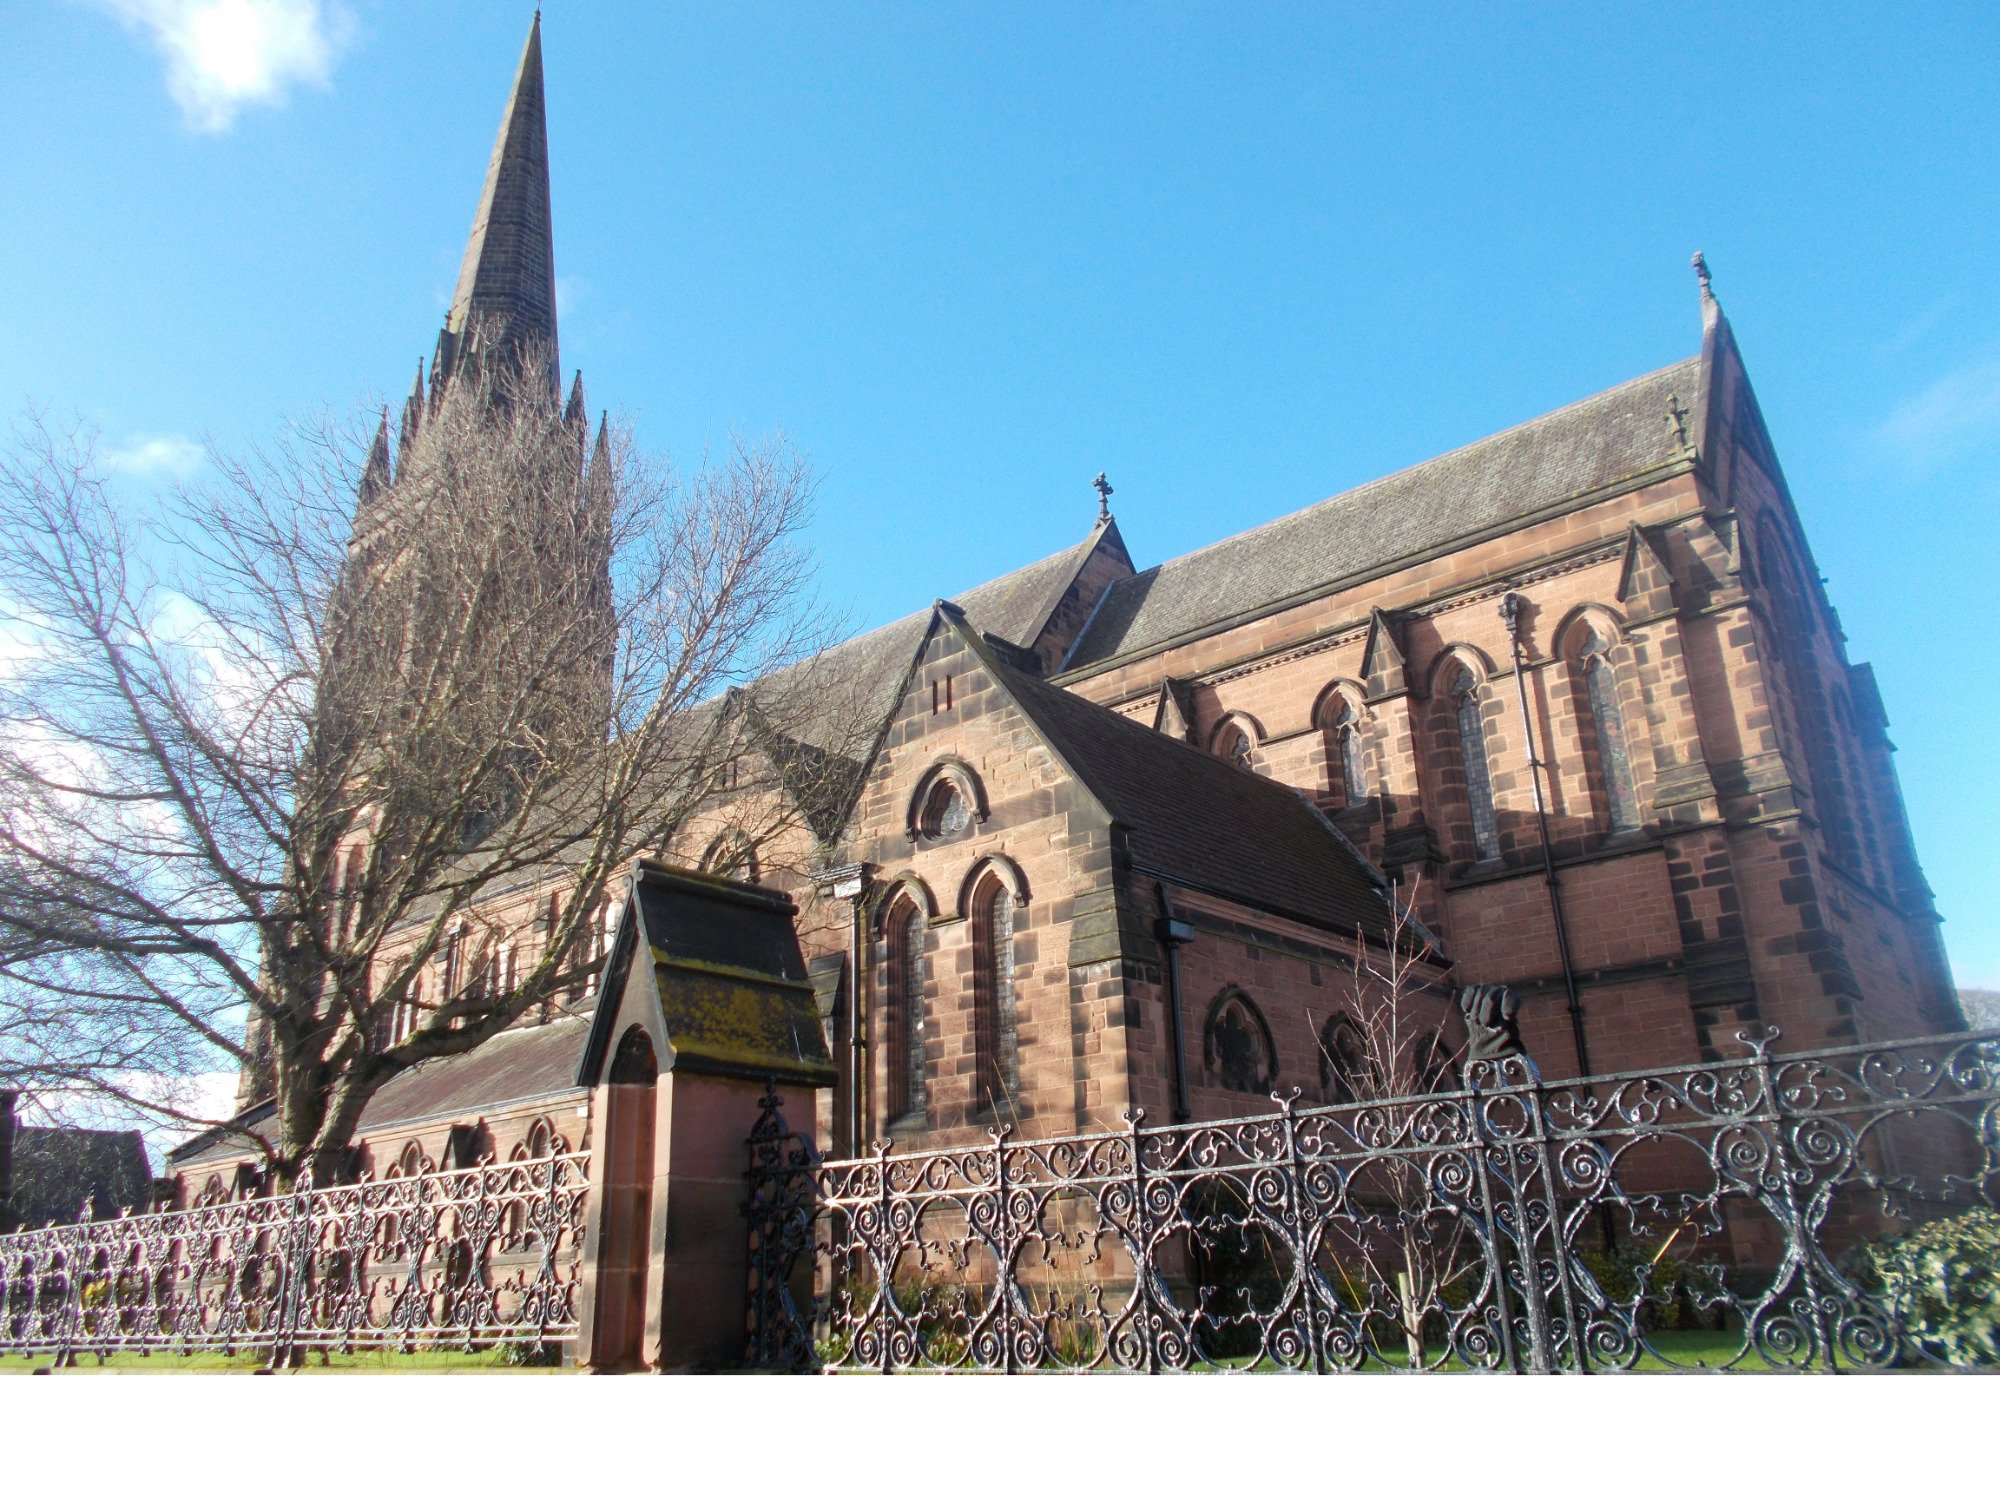 Parish Church Of Saint Mary Without-the-Walls | Overleigh Road, Handbridge, Chester CH4 7HL | +44 1244 671202